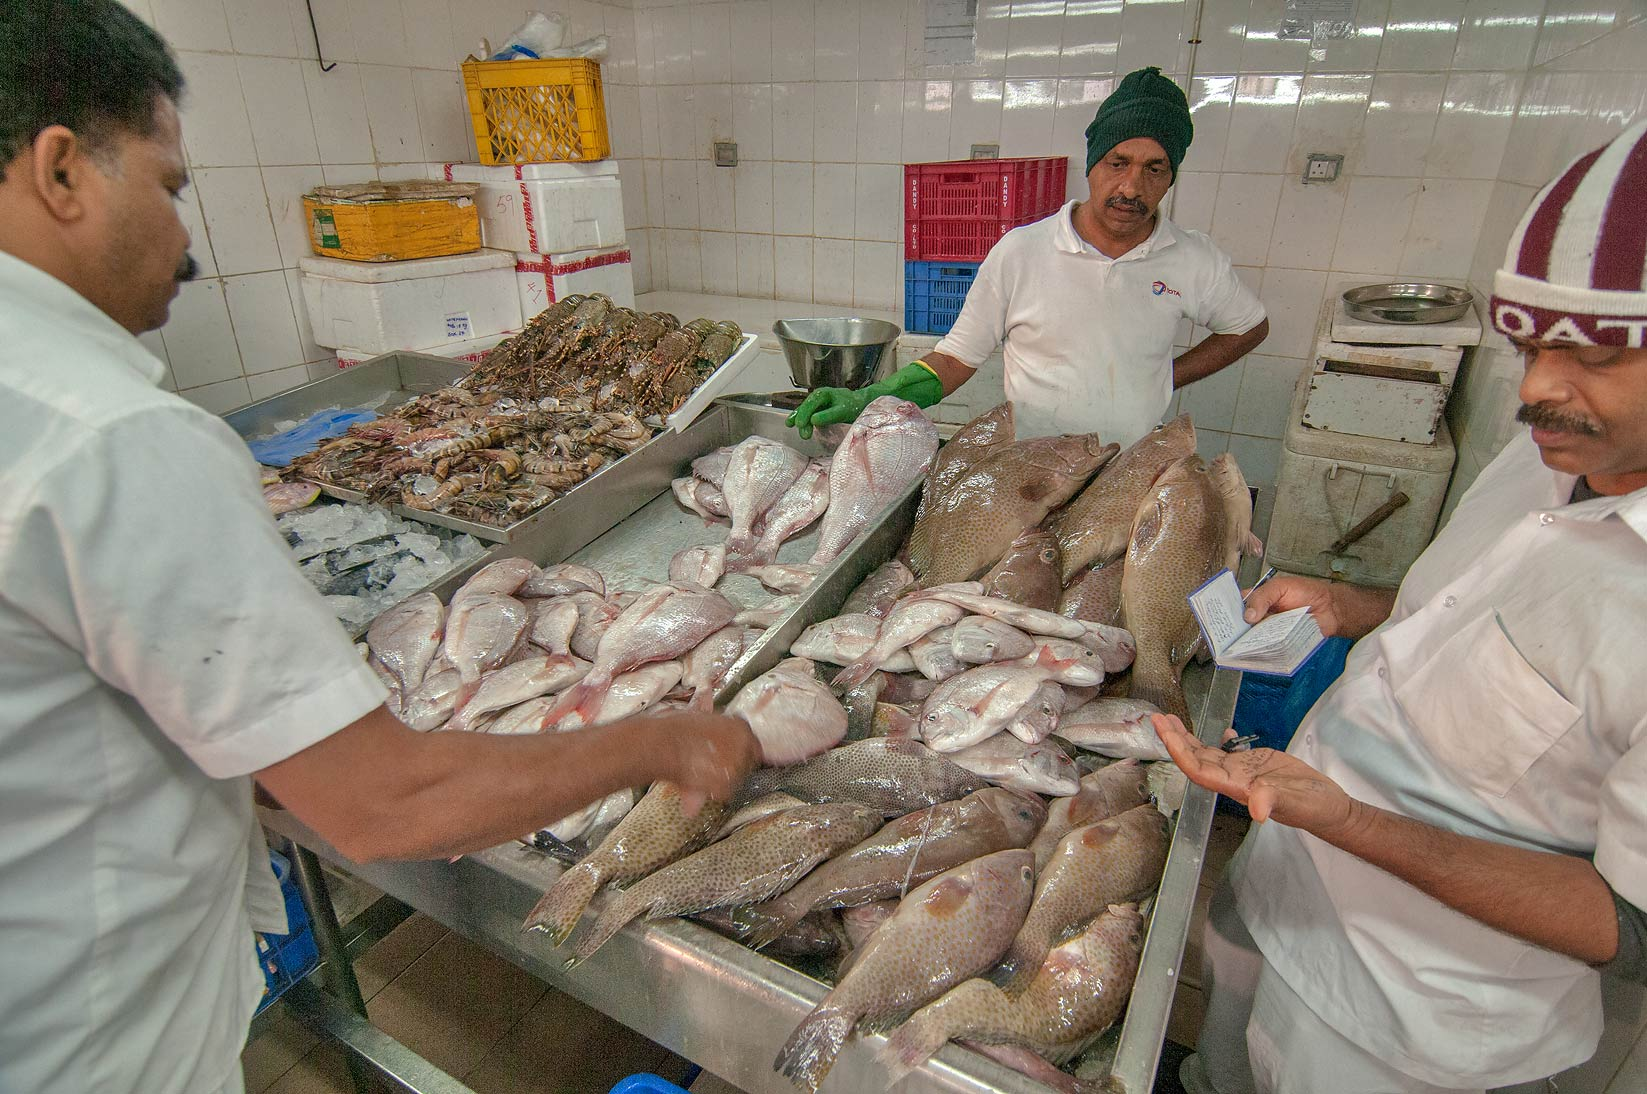 Counting fish in Wholesale Fish Market. Doha, Qatar